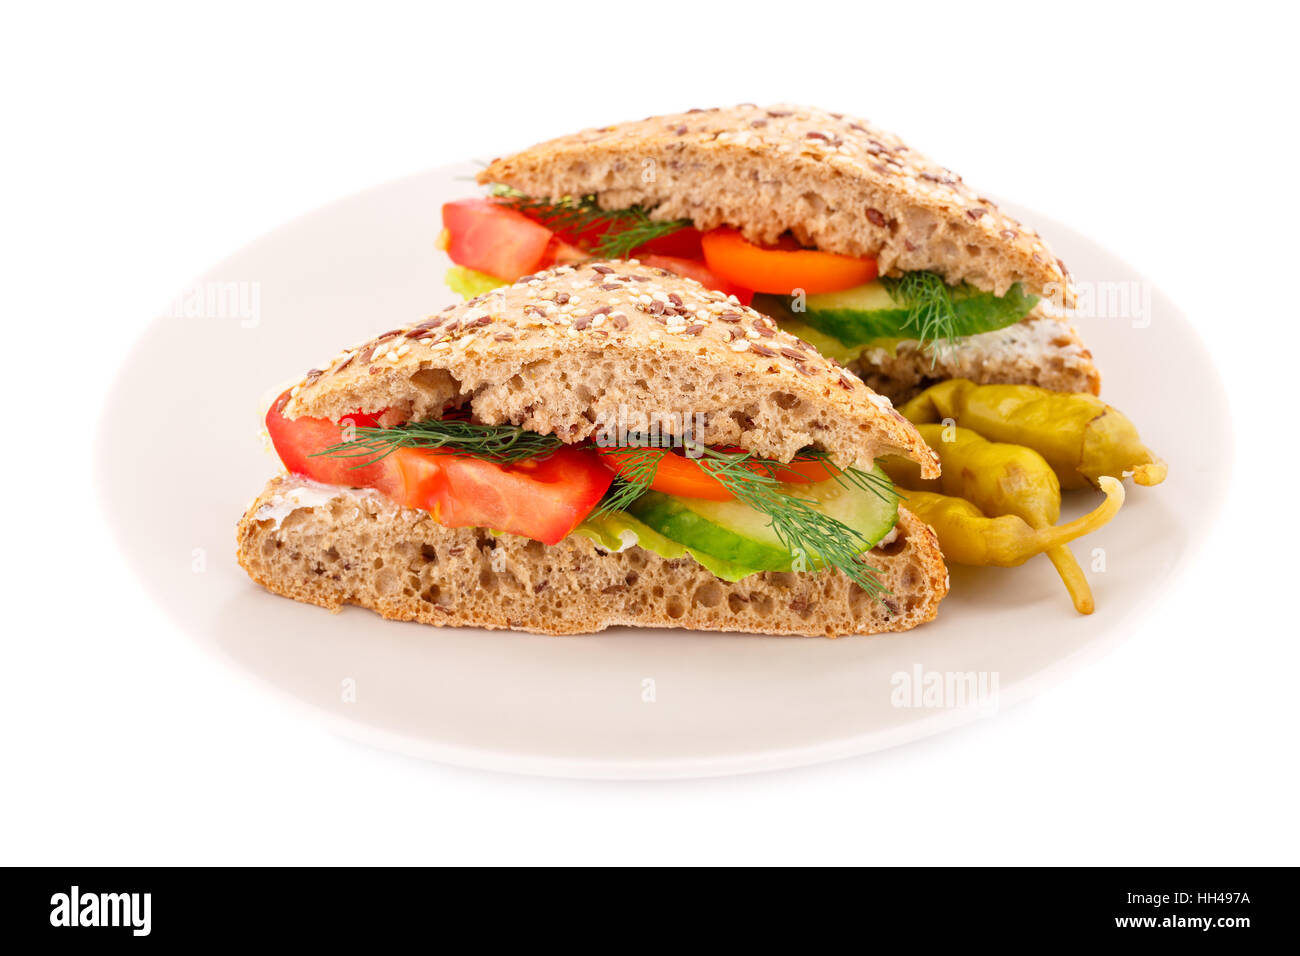 Sandwiches with fresh vegetables and cheese on plate. - Stock Image